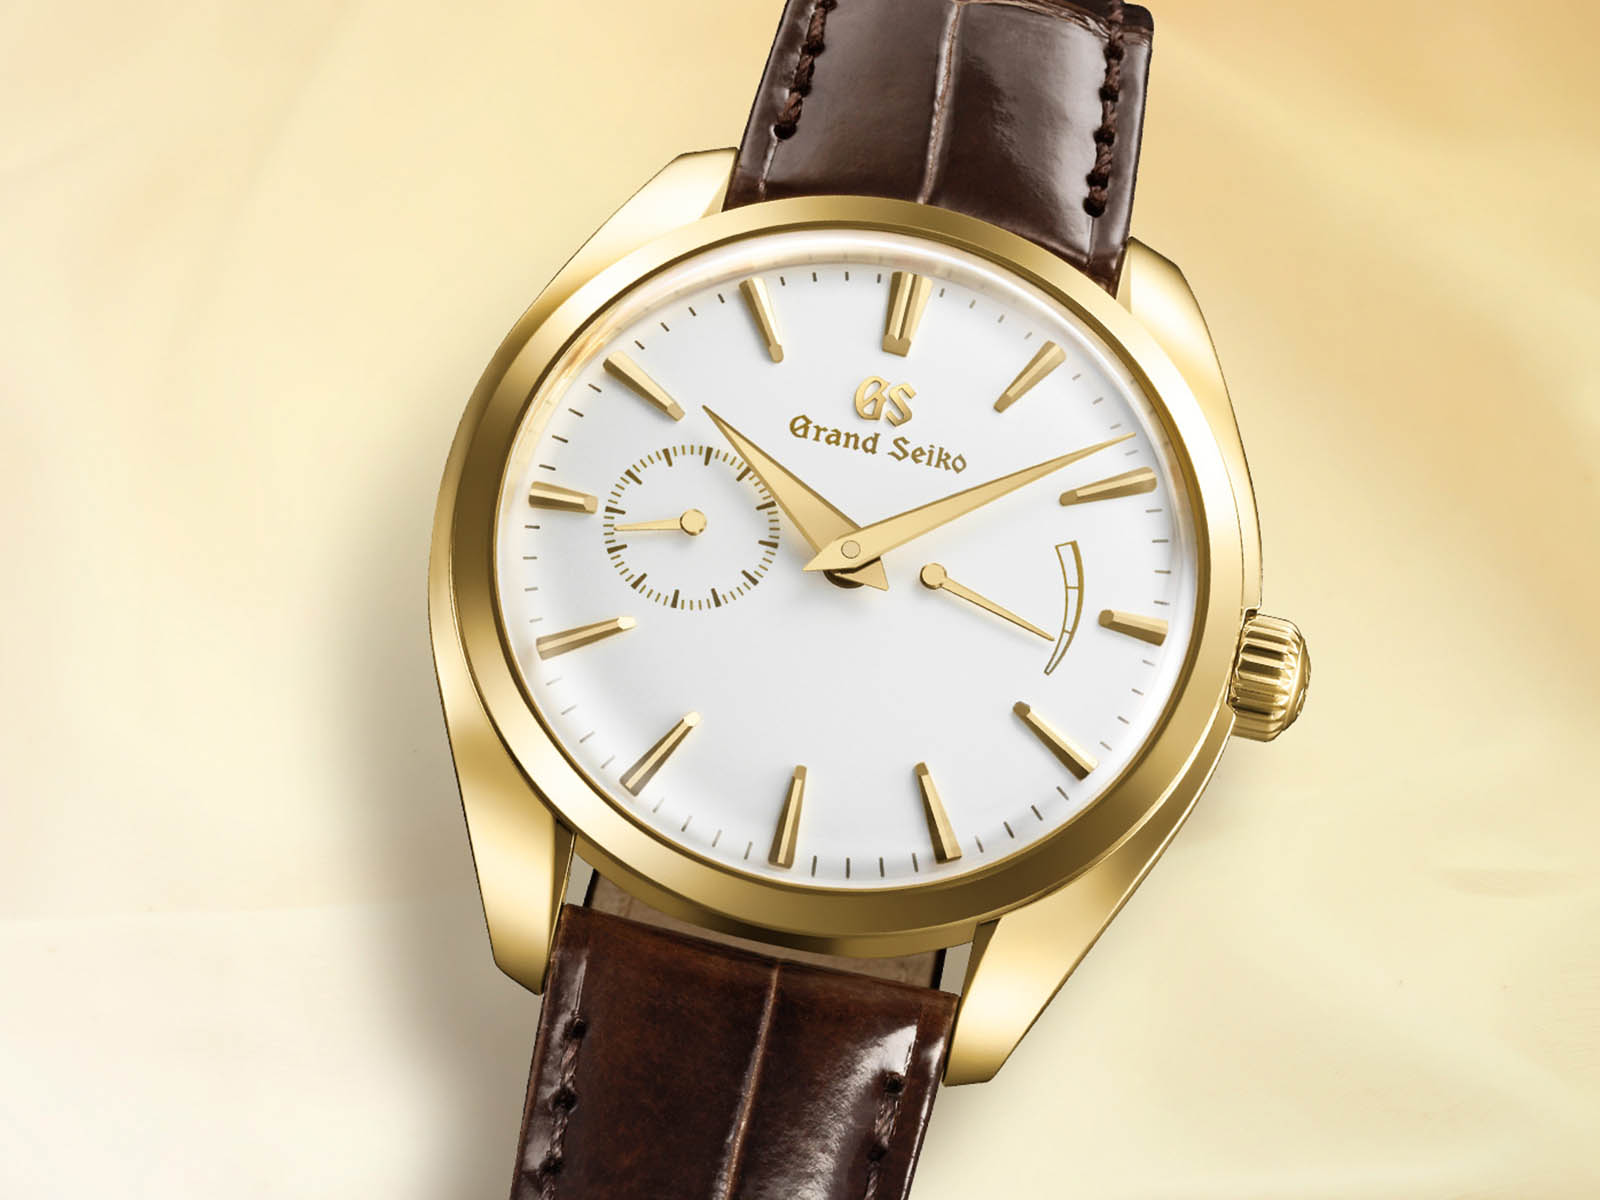 sbgk006-grand-seiko-elegance-collection-1.jpg